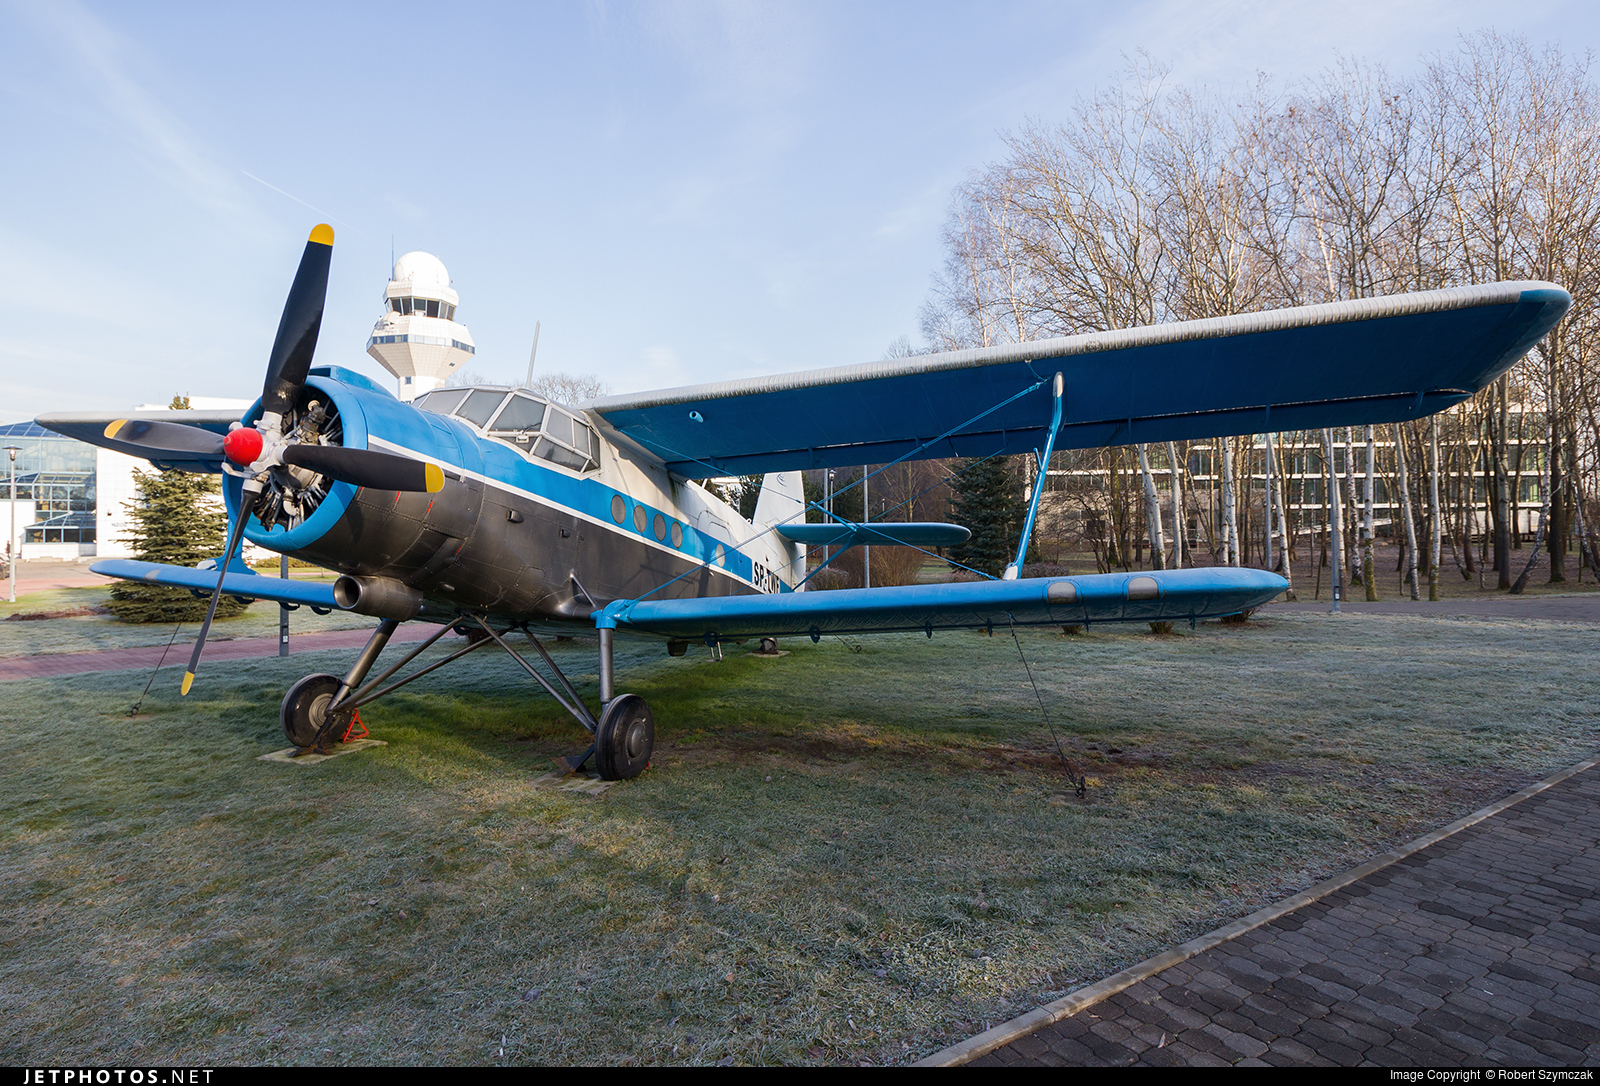 SP-TWF - PZL-Mielec An-2 - Poland - Air Navigation Services Agency (PANSA)